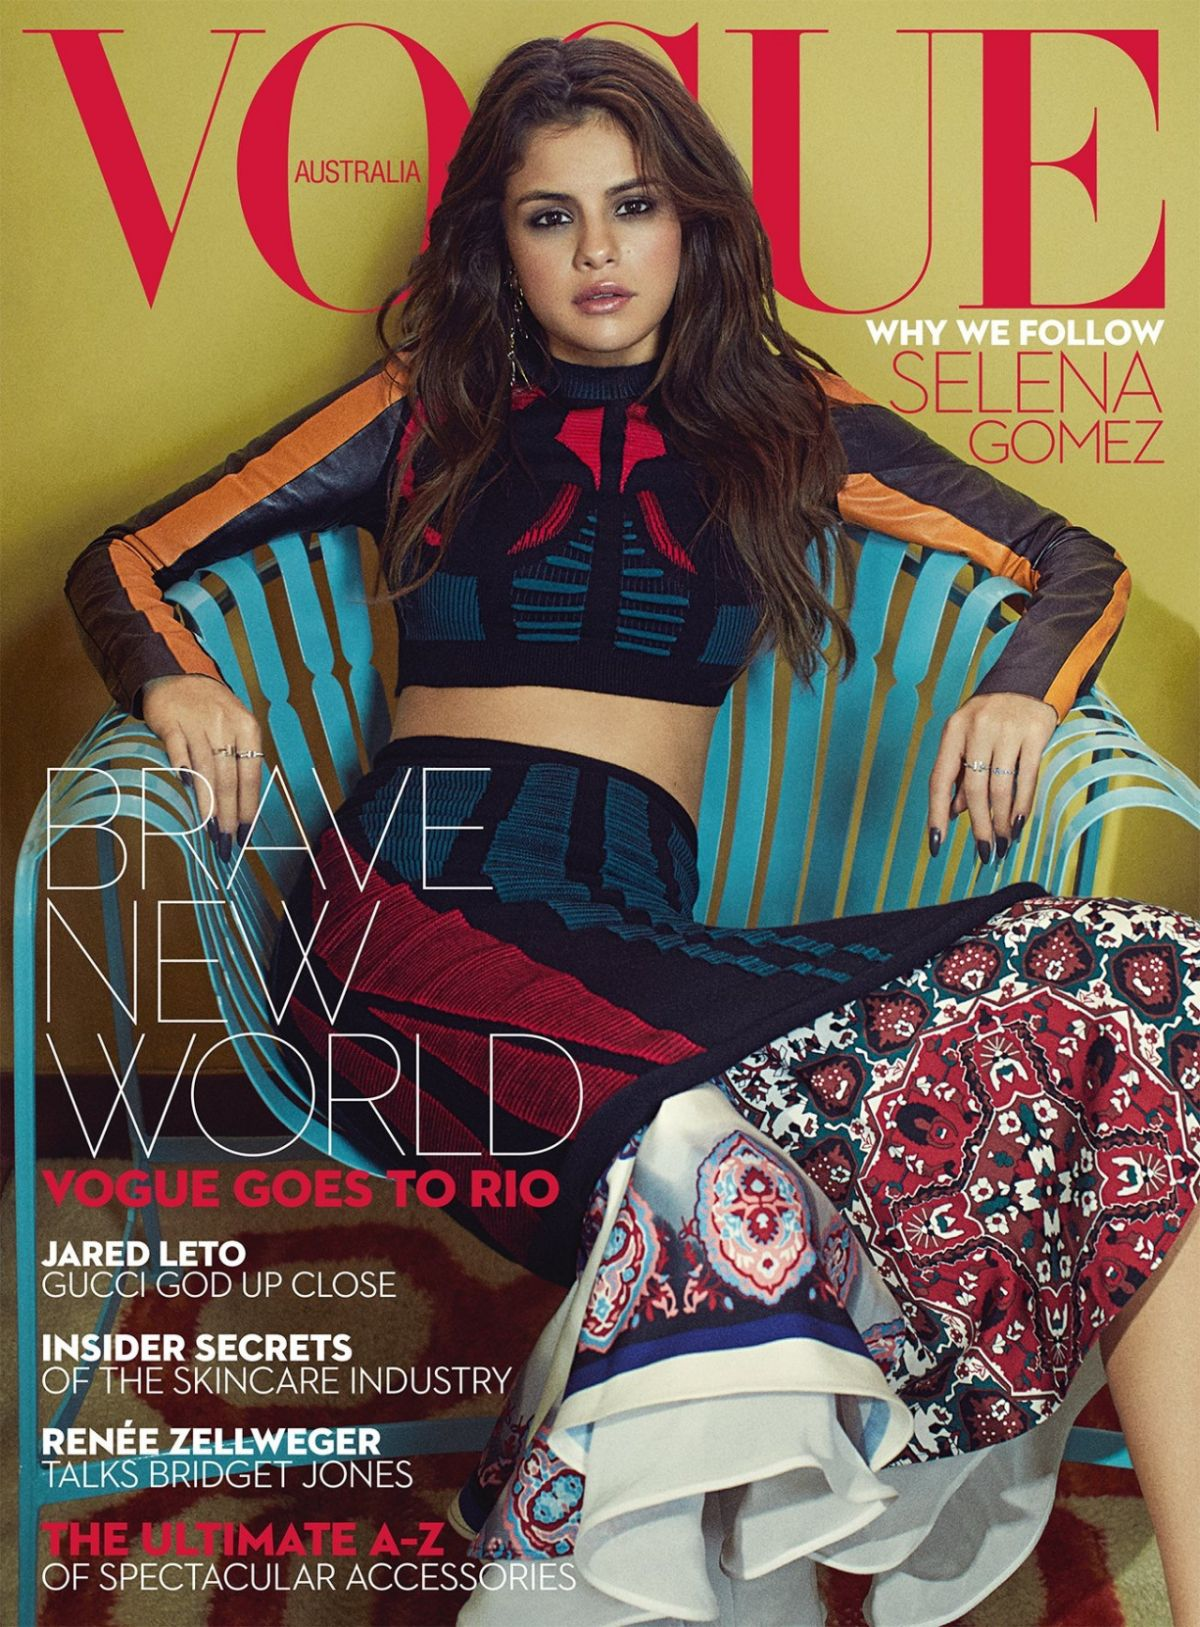 SELENA GOMEZ in Vogue Magazne, Australia September 2016 Issue